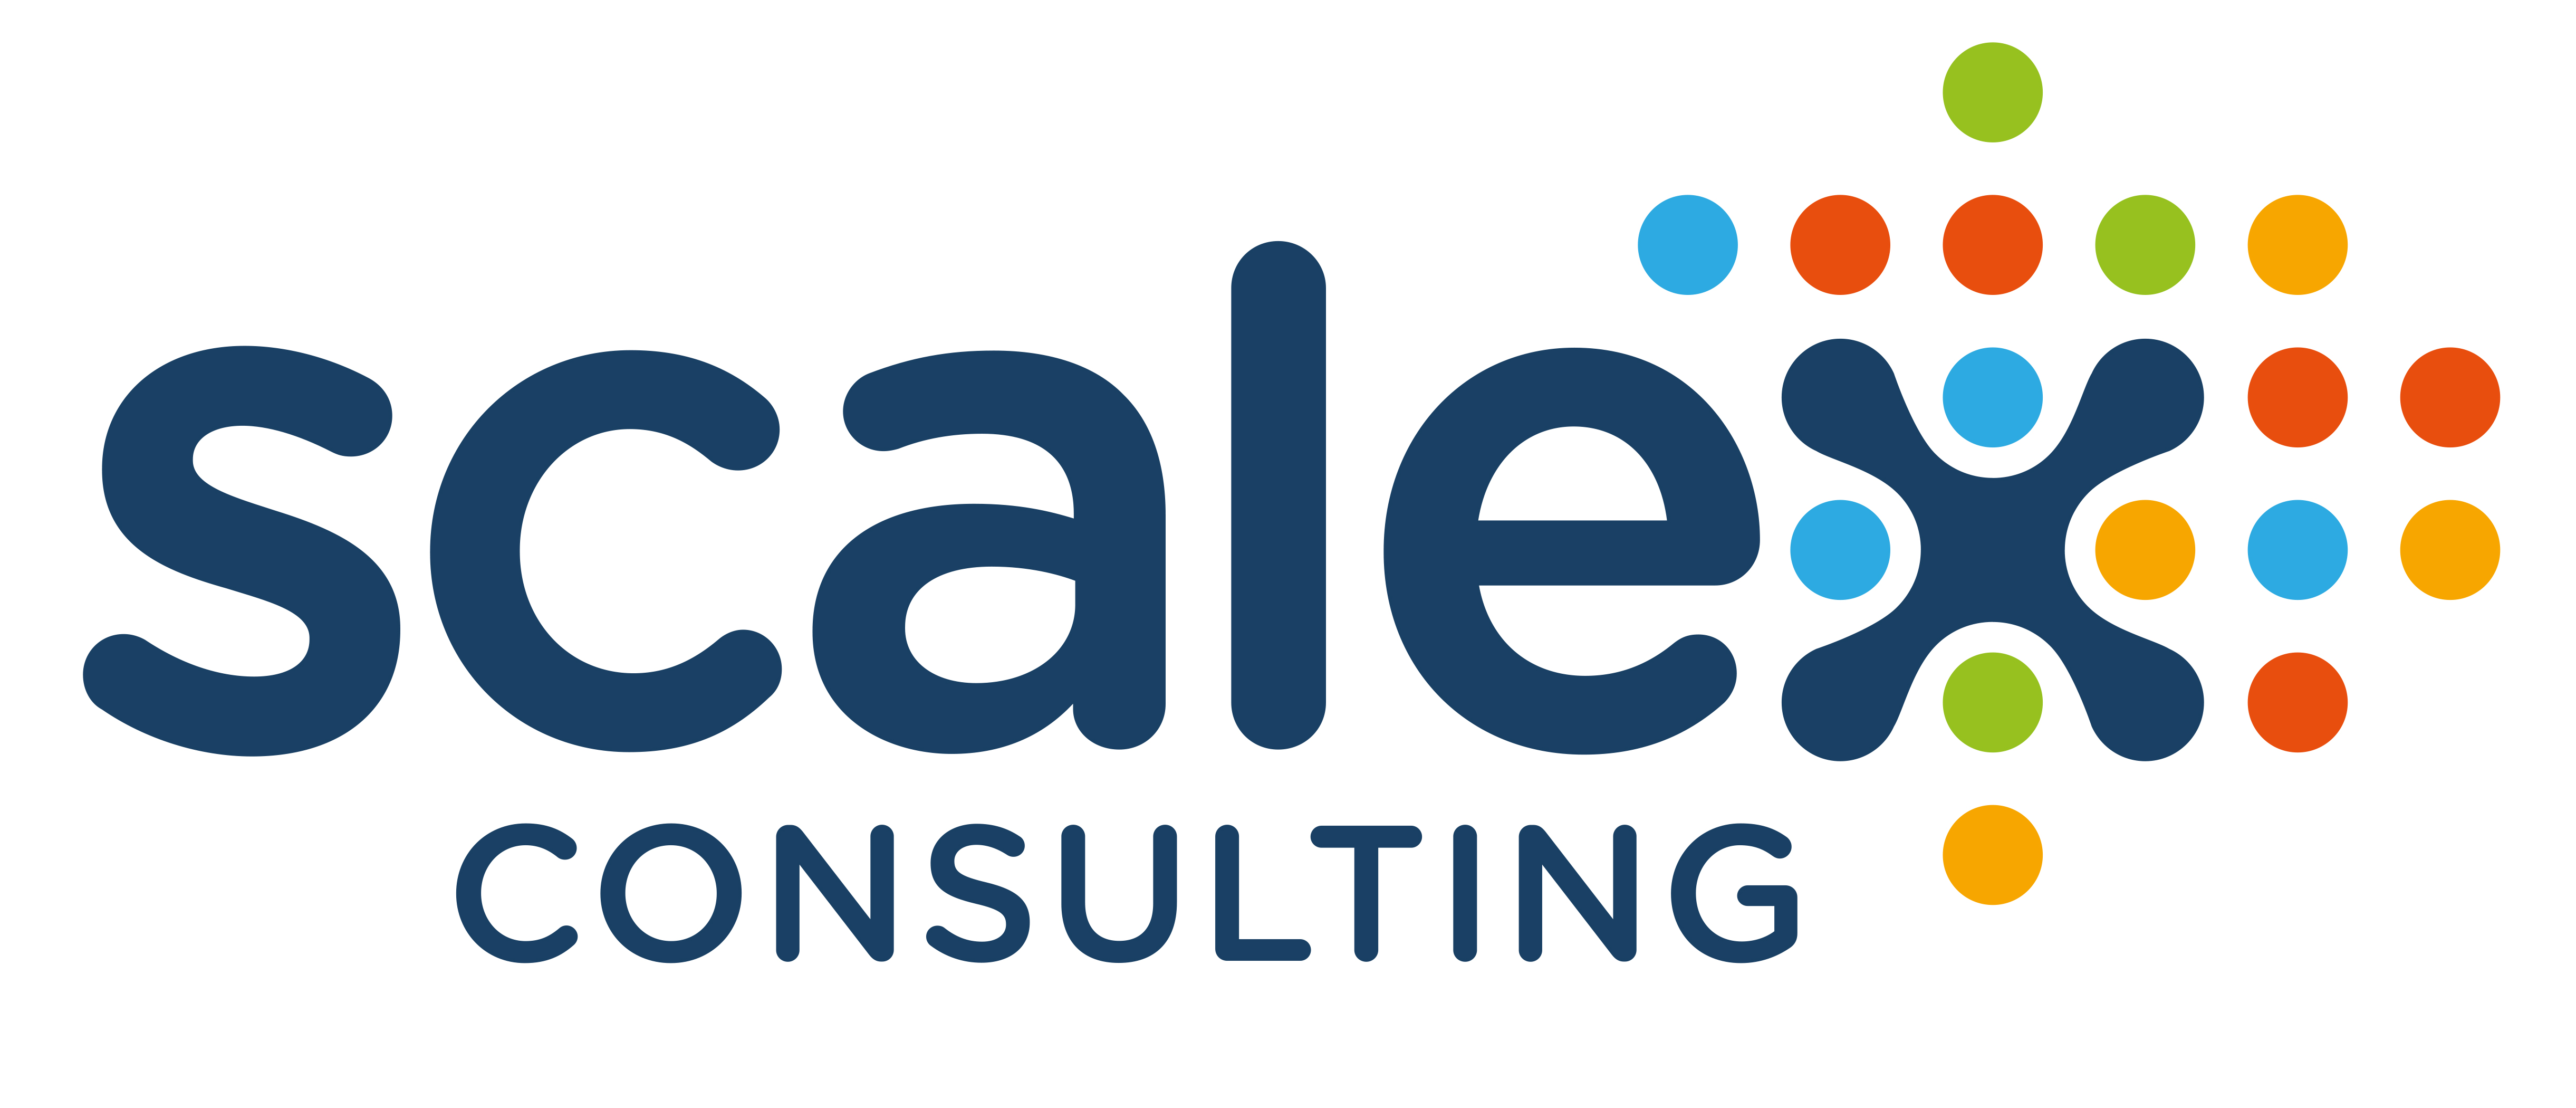 ScaleX Consulting Limited